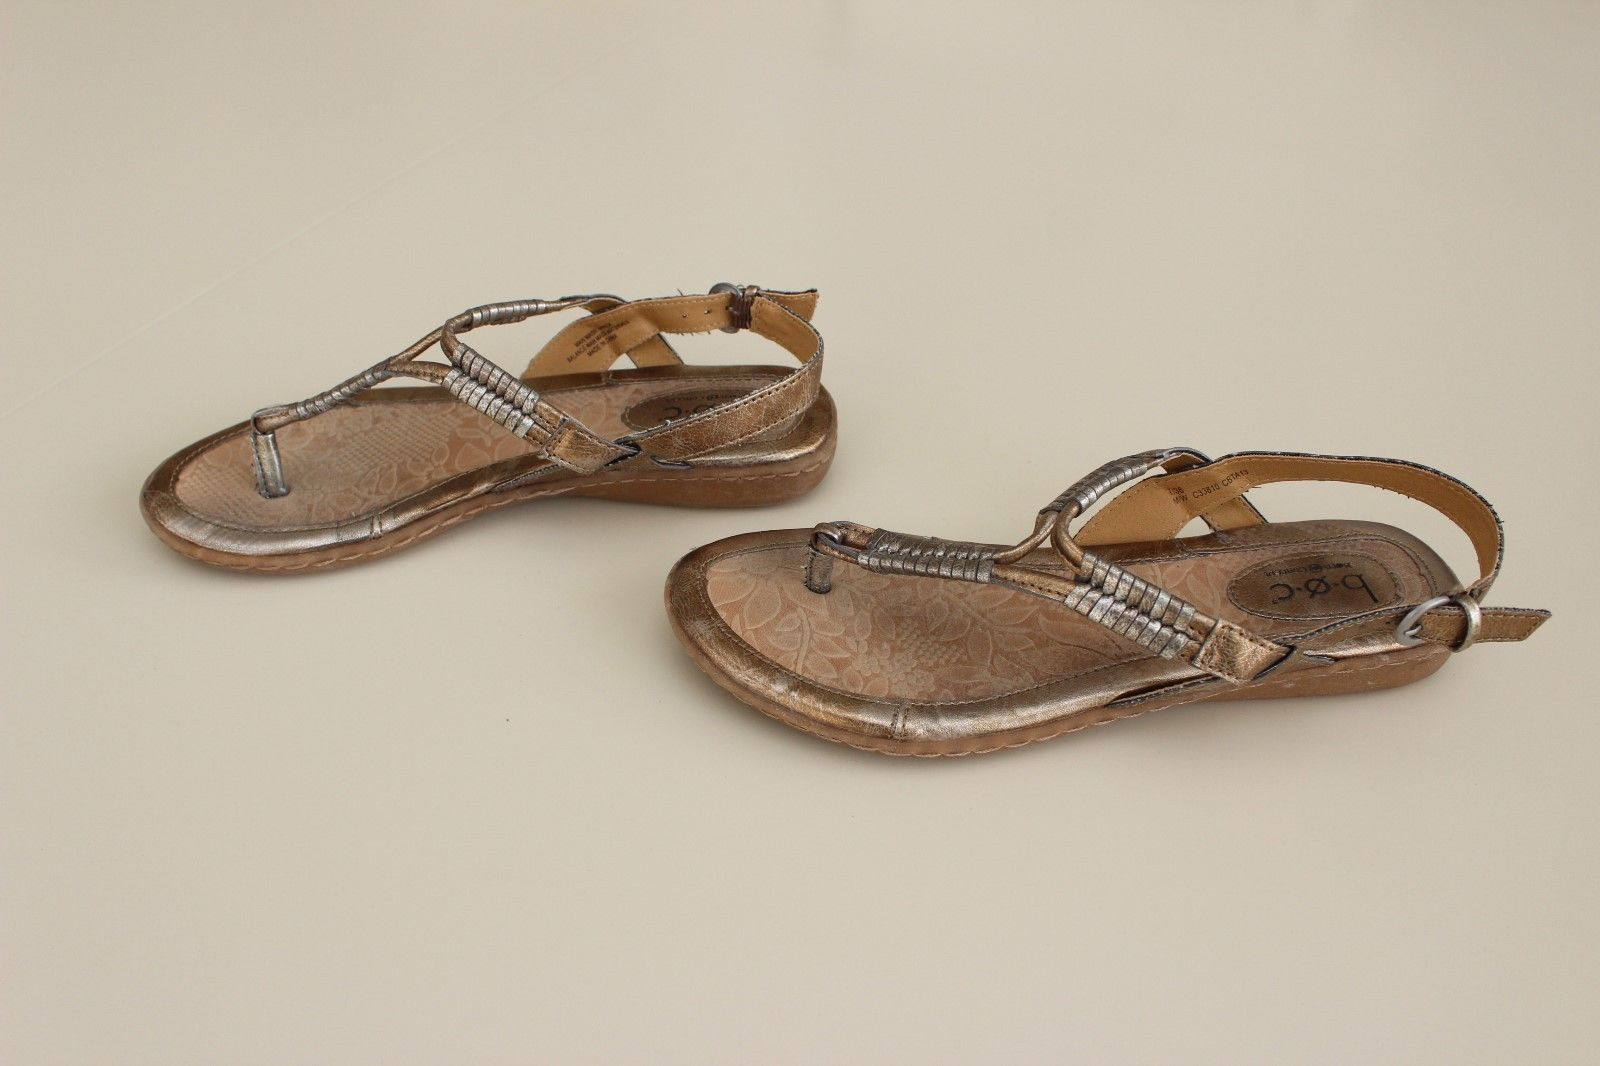 7936a2df1 b.o.c. by Born Metallic Gold Sandals Size 7 and 50 similar items. S l1600